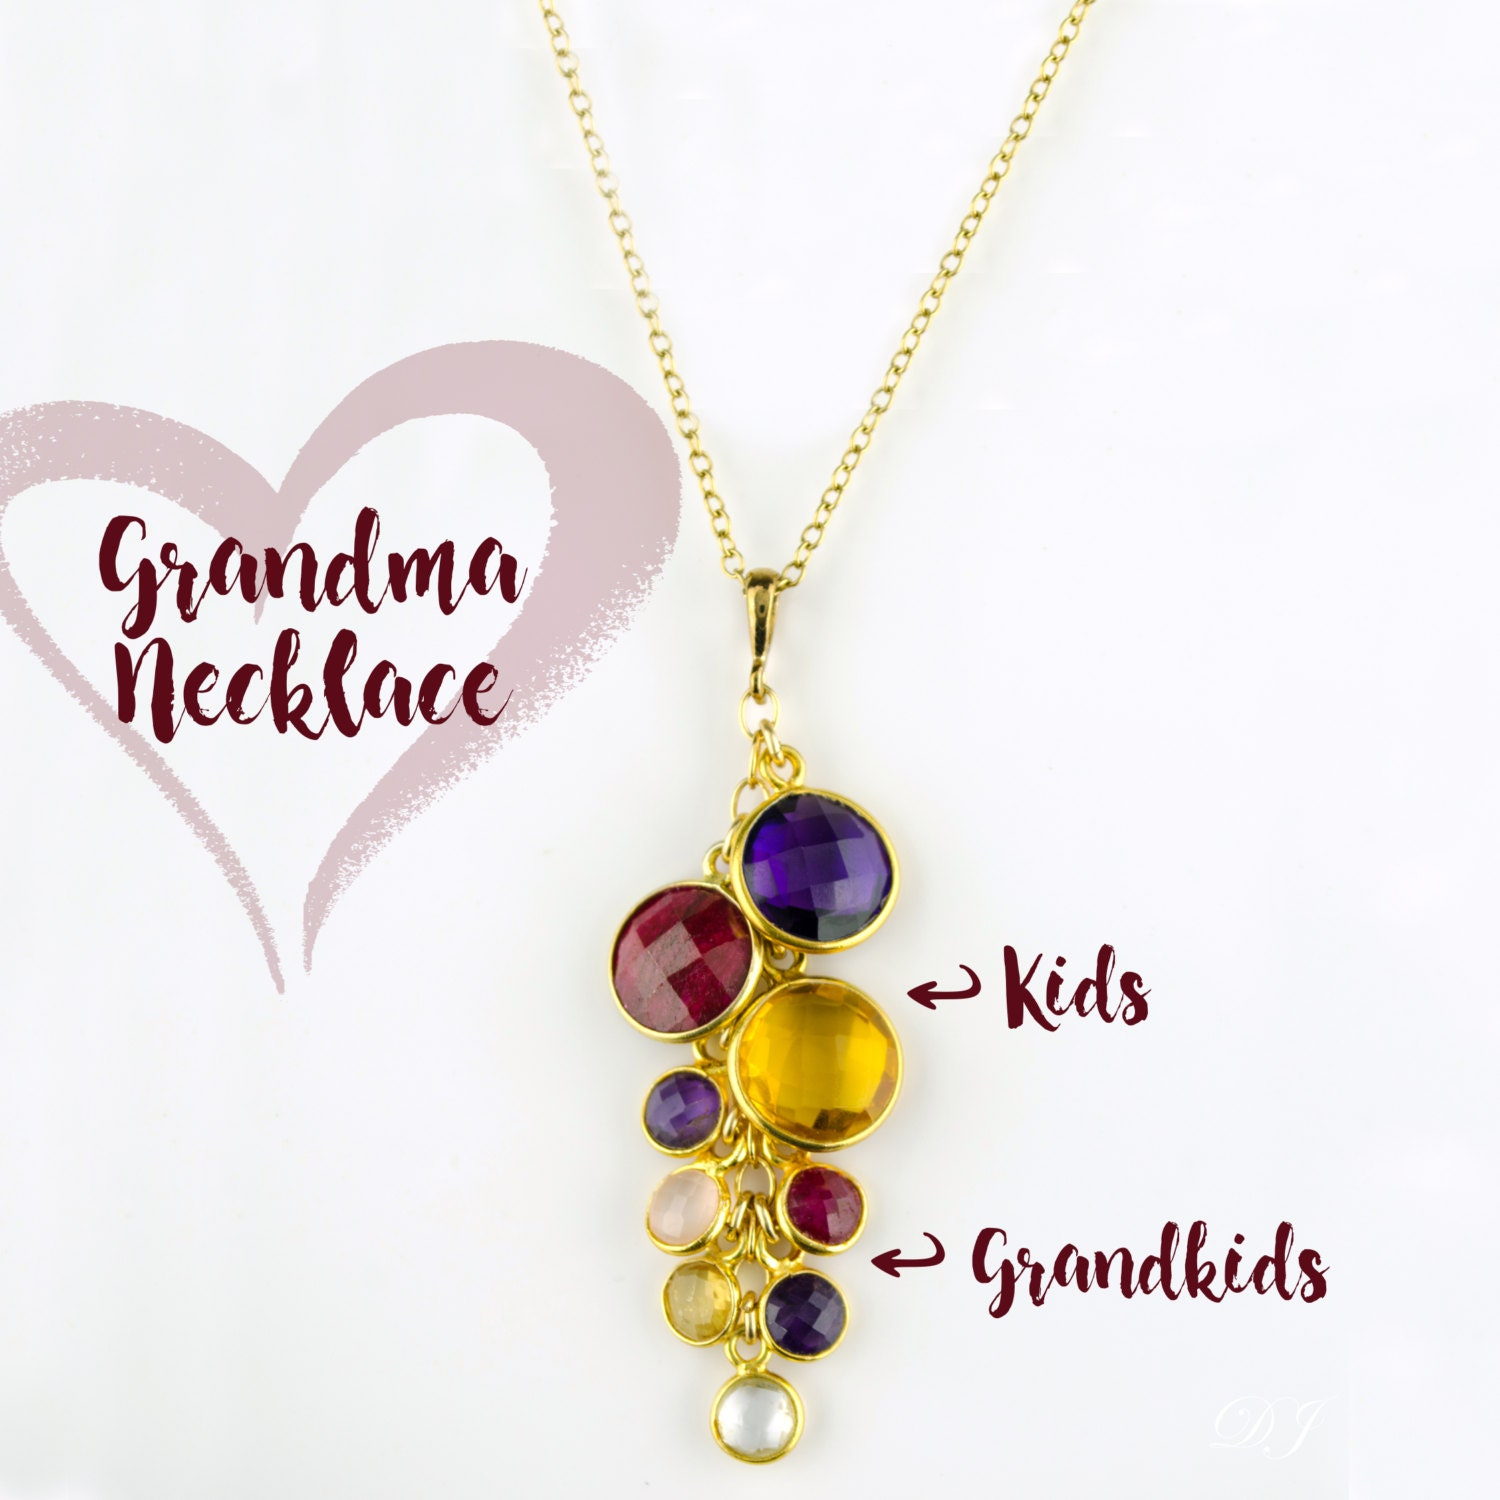 il mothers birthstones day custom grandkid birthstone of necklace grandkids gift p with family tree for cpee fullxfull life grandma